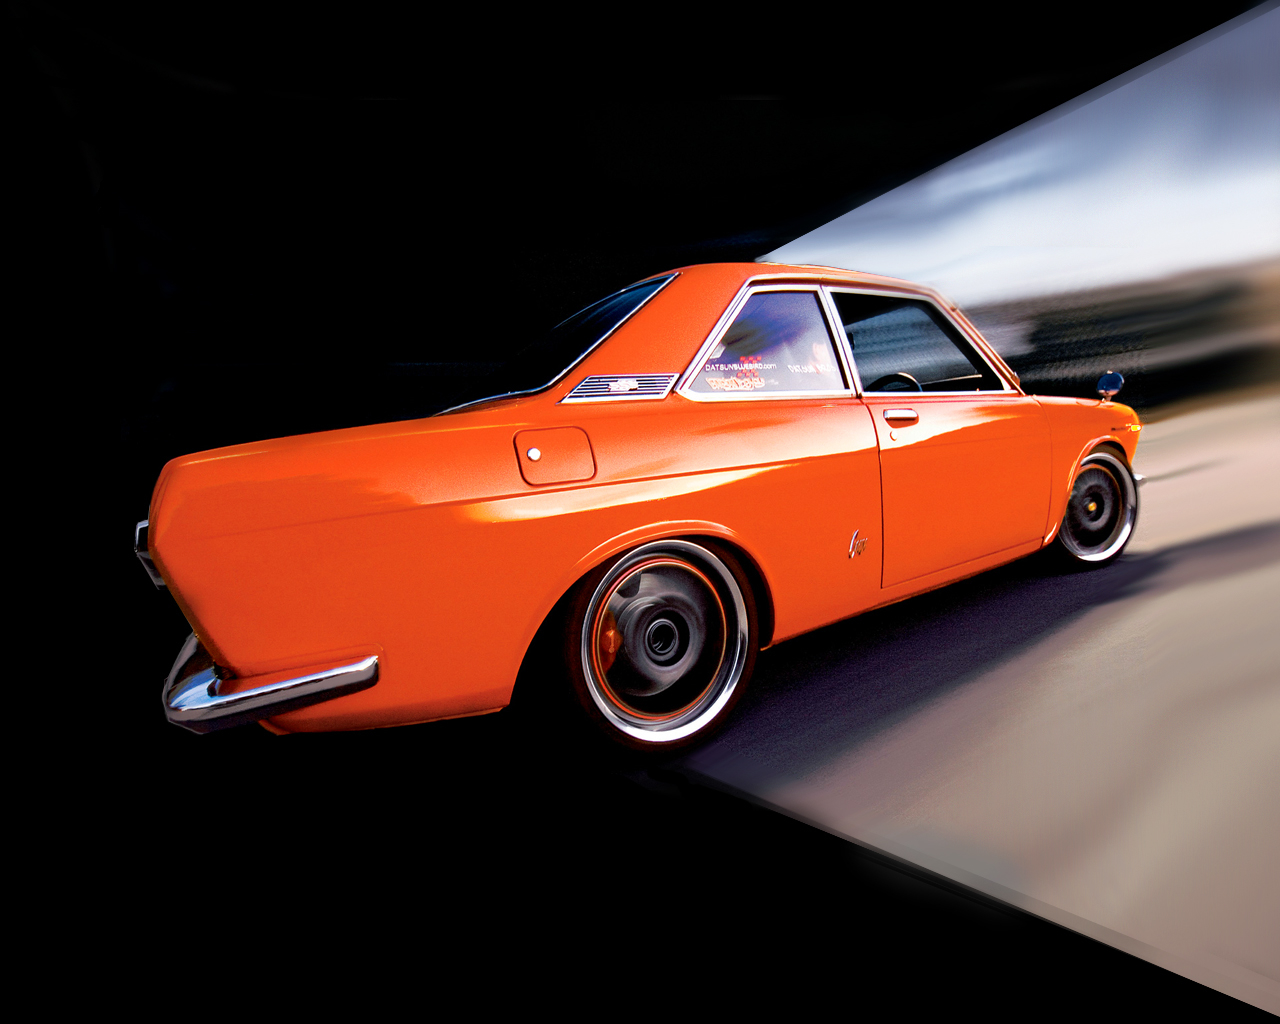 old cars orange vehicles HD Wallpaper